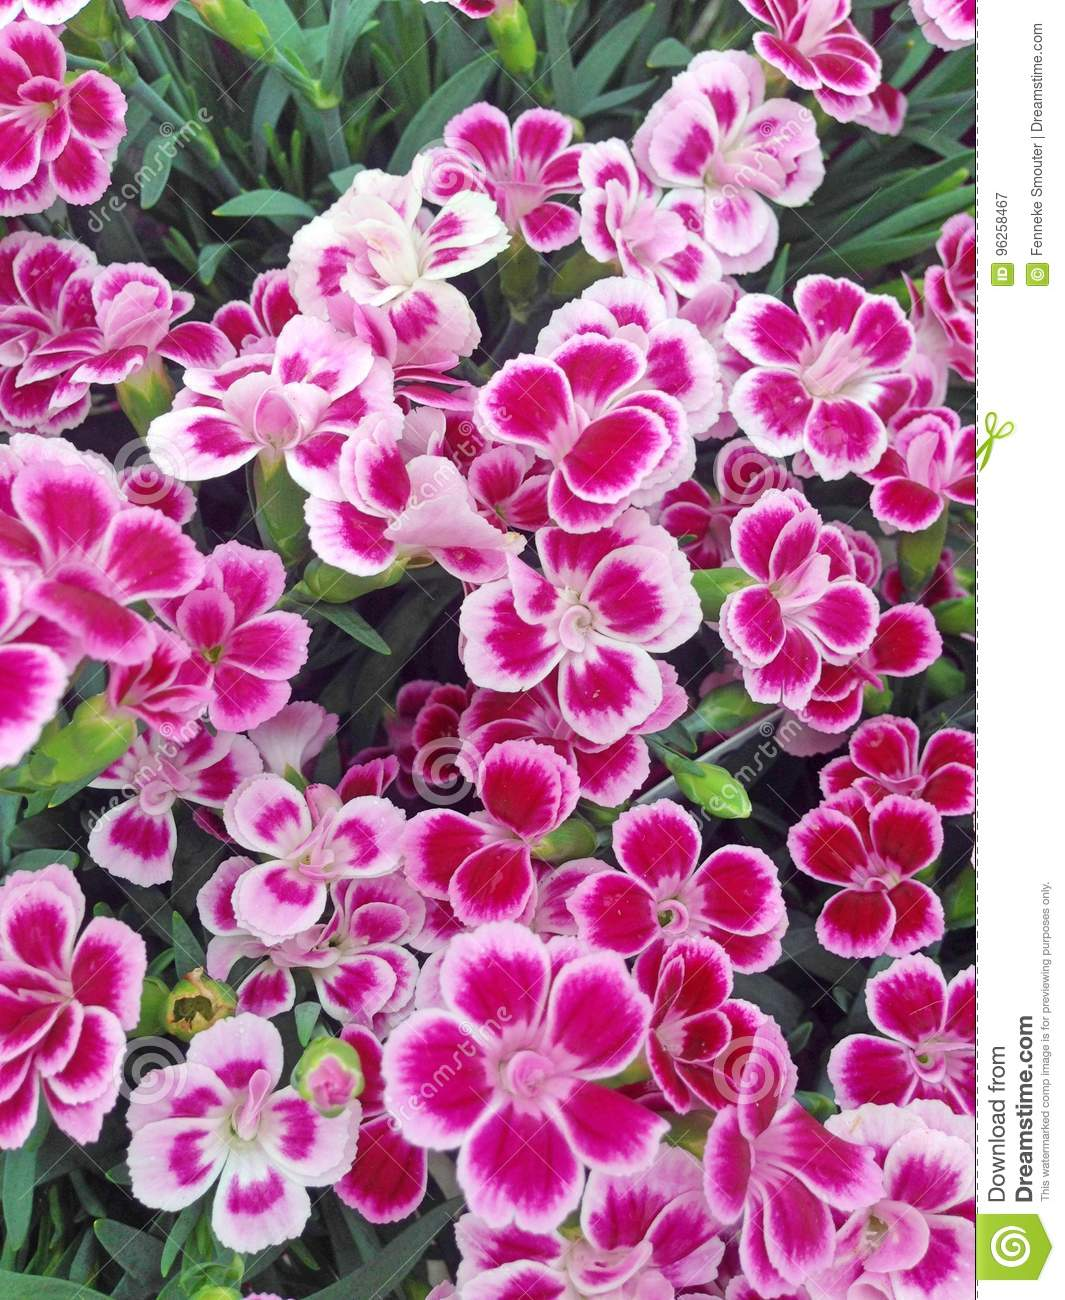 Vibrant Dianthus Flowers In Shades Of Pink Stock Image Image Of